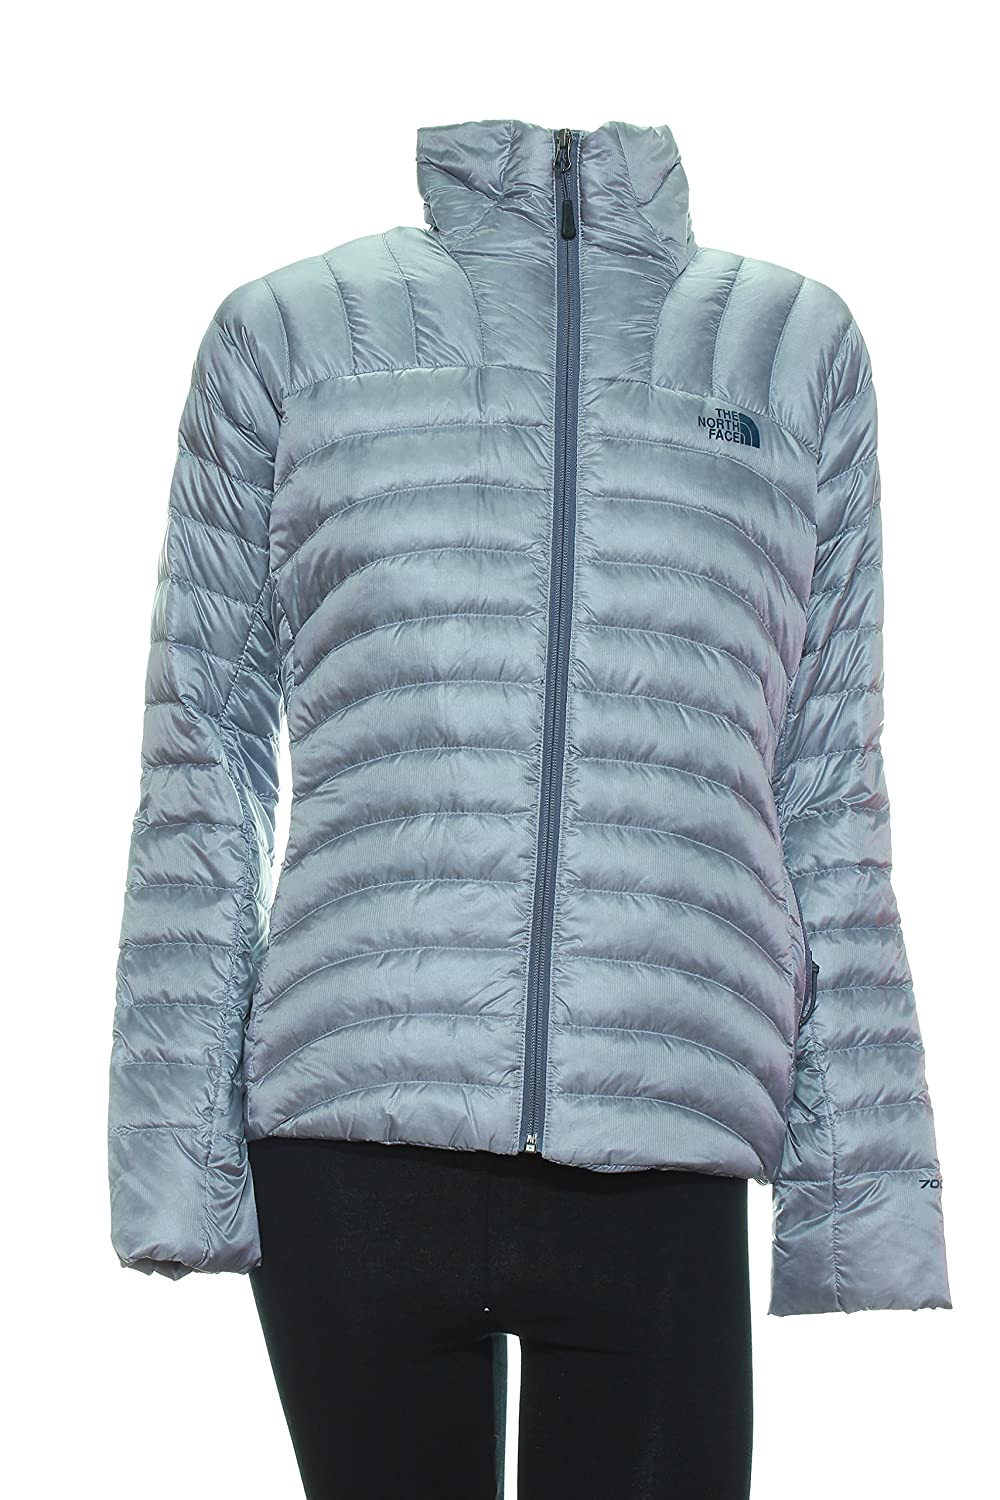 ba36c9cc1910 Amazon.com  Women s The North Face Tonnerro Hoodie Jacket Medium Dapple  Grey  Clothing